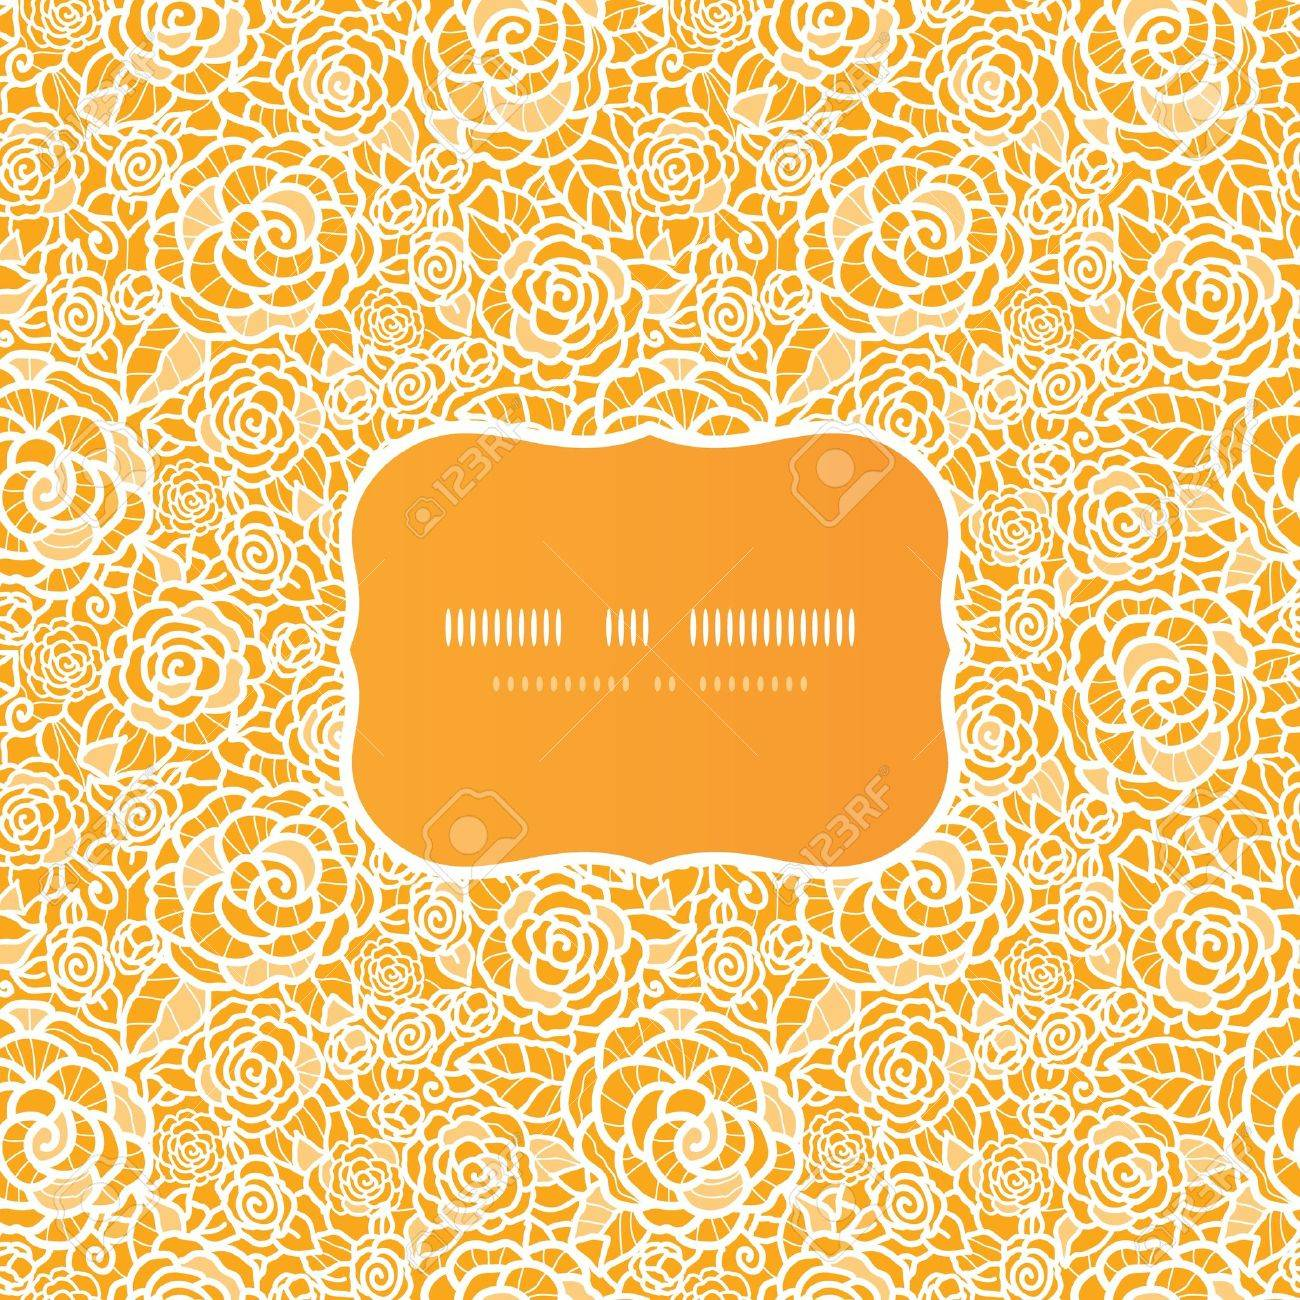 Golden lace roses frame seamless pattern background Stock Vector - 17590945